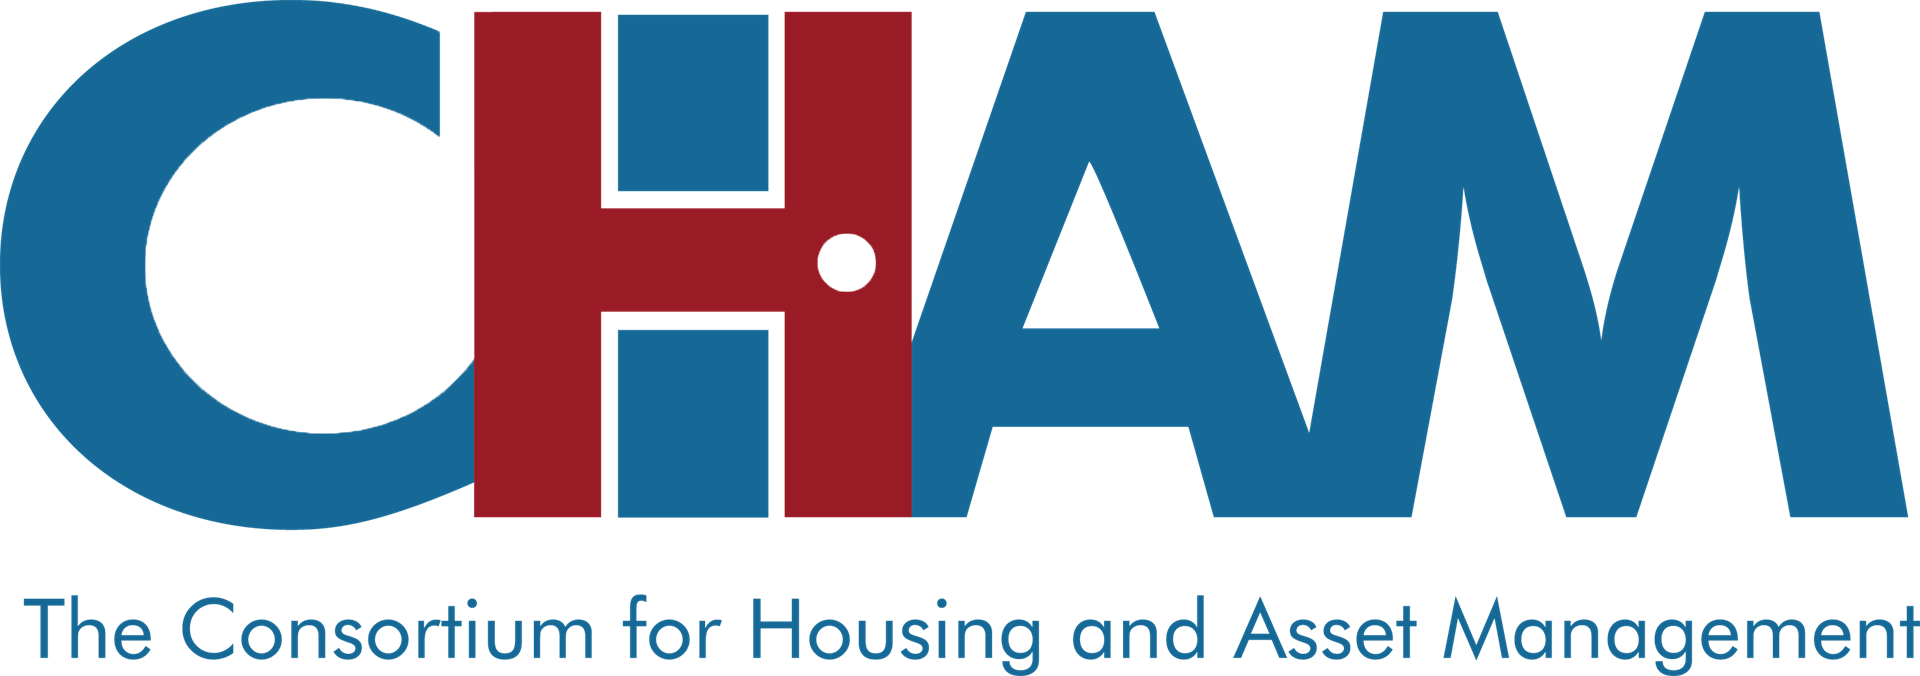 CHAM - The Consortium for Housing and Asset Management